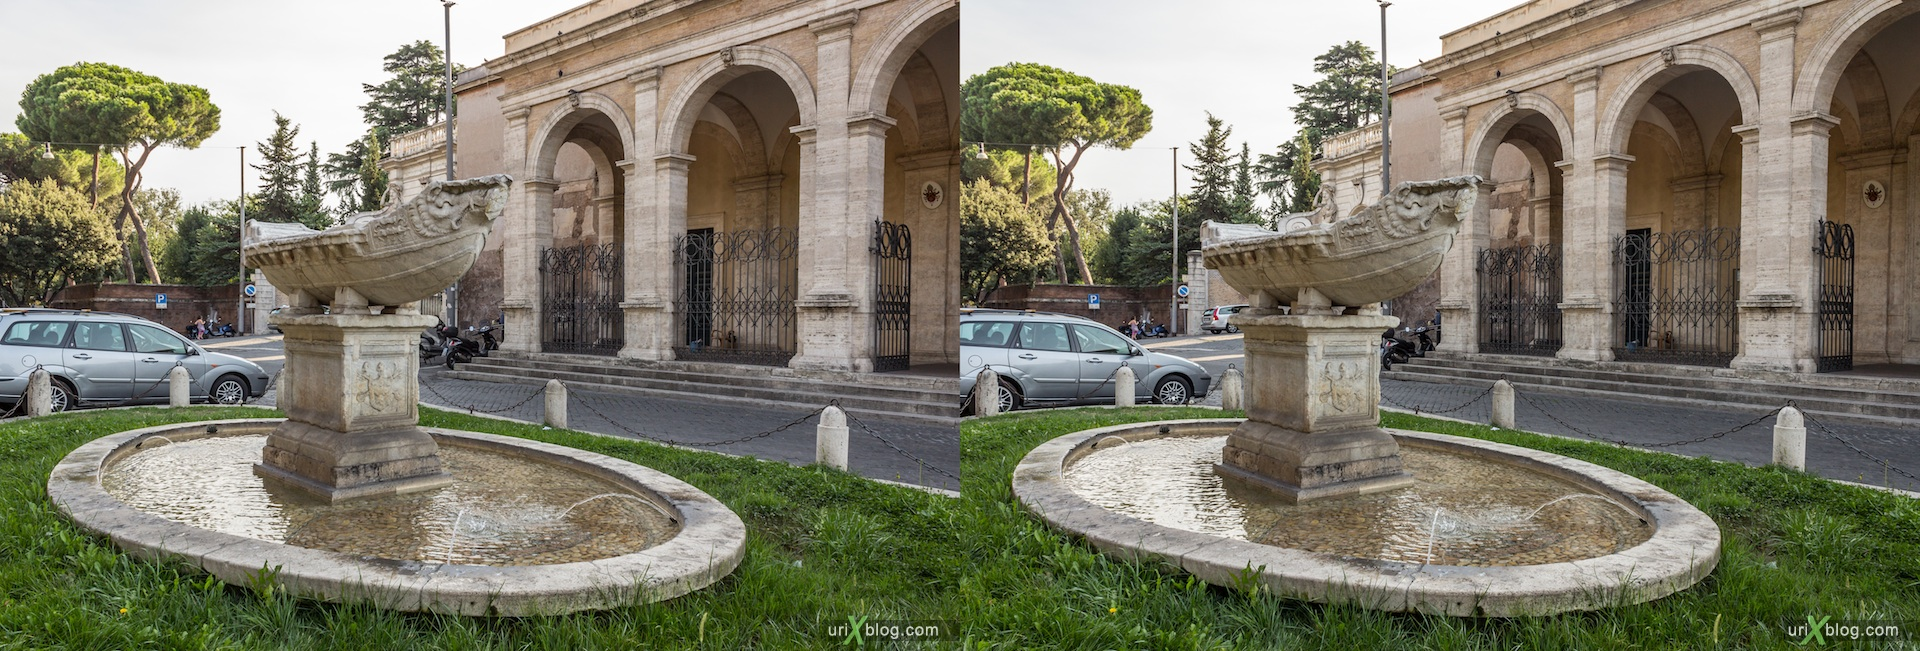 2012, fountain, Nacelle, Navicella, Church of Santa Maria in Domnica alla Navicella, Rome, Italy, 3D, stereo pair, cross-eyed, crossview, cross view stereo pair